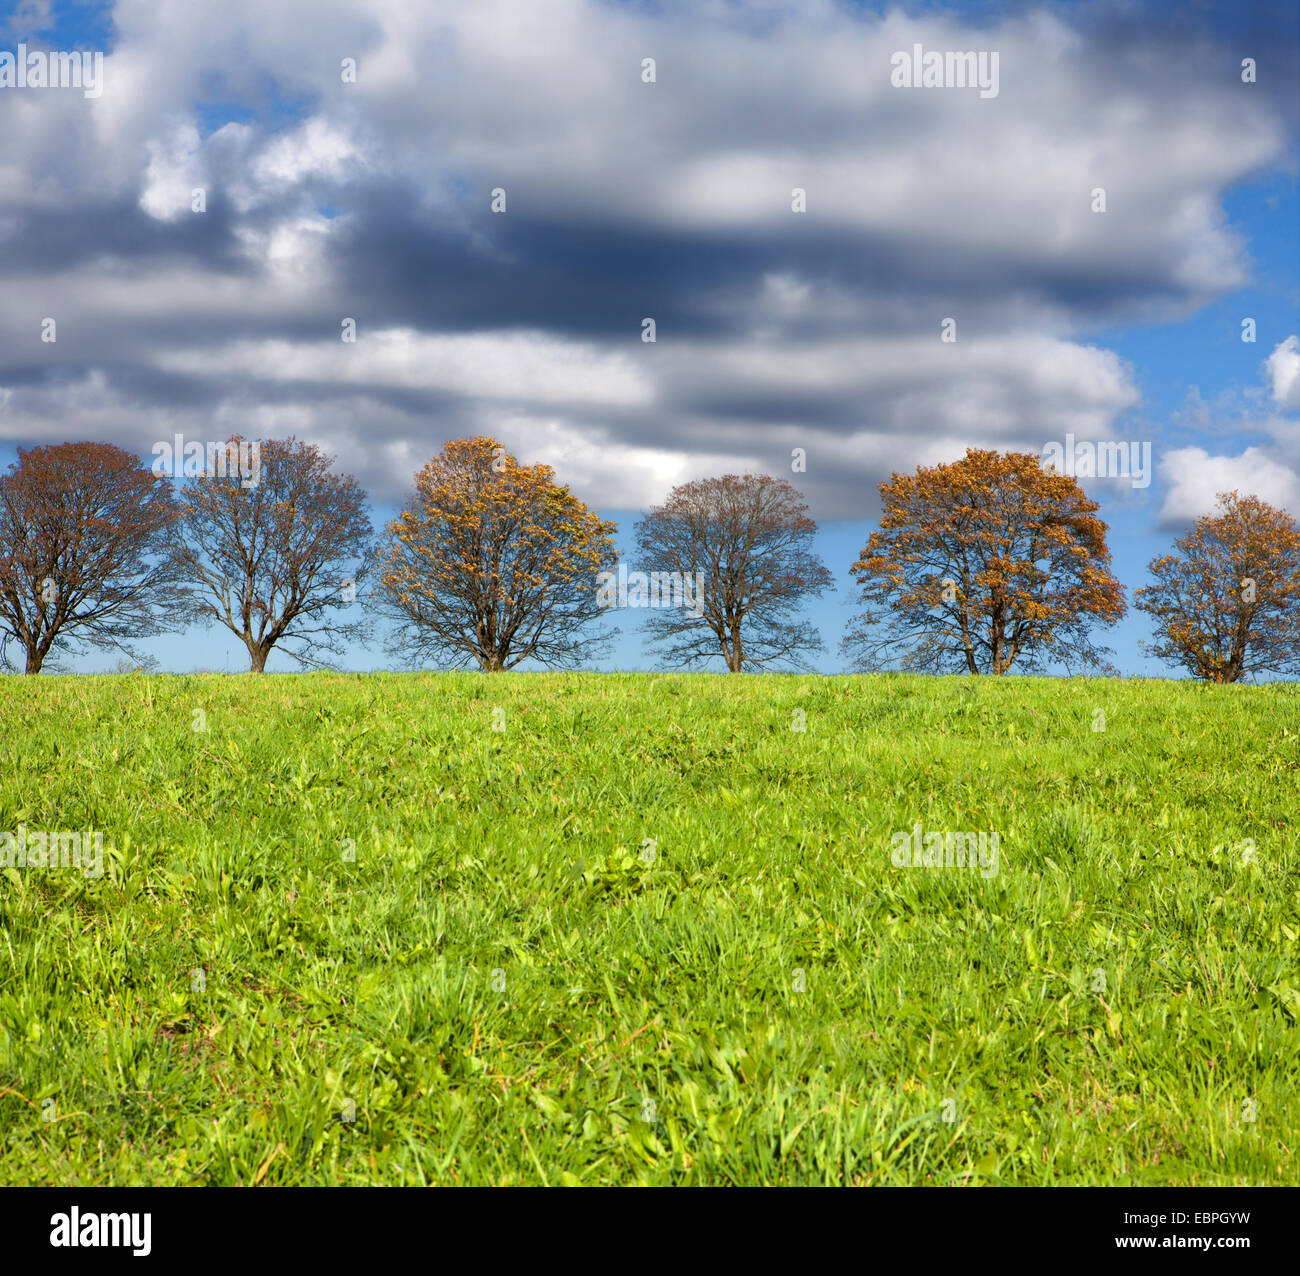 Row of trees with clouds, Meinerzhagen, North Rhine-Westphalia, Germany, Europe - Stock Image